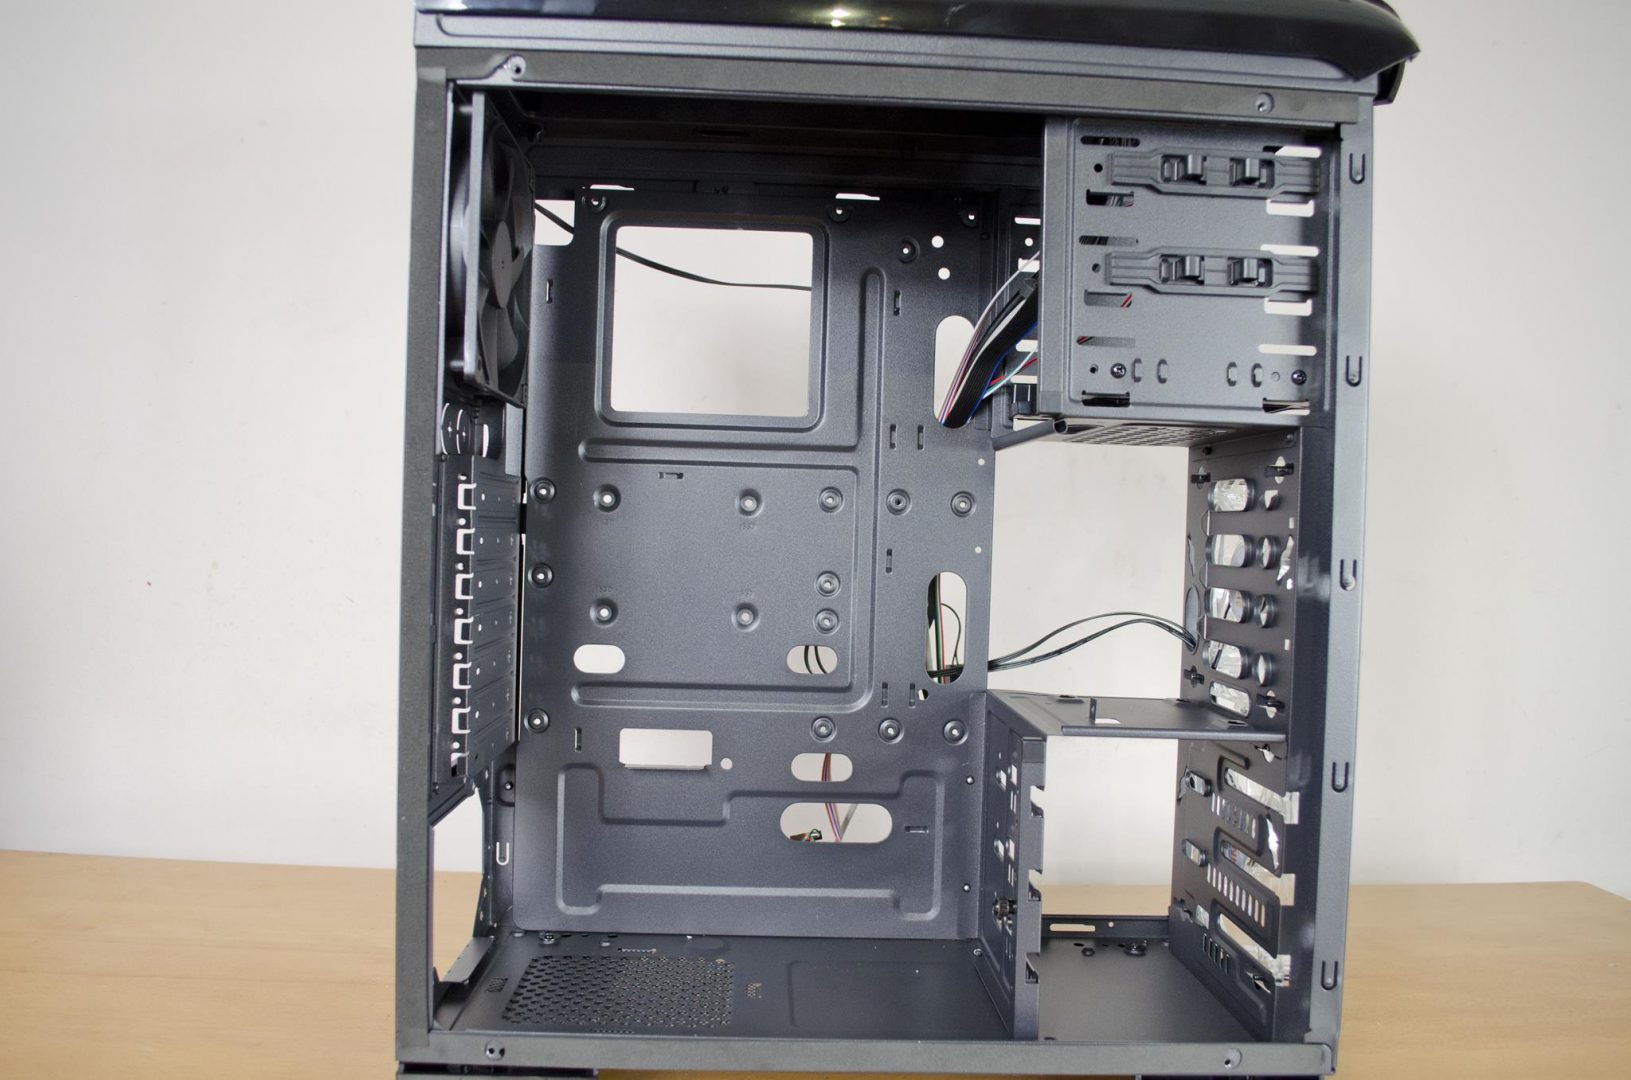 kolink-aviator-v-pc-case-review_11